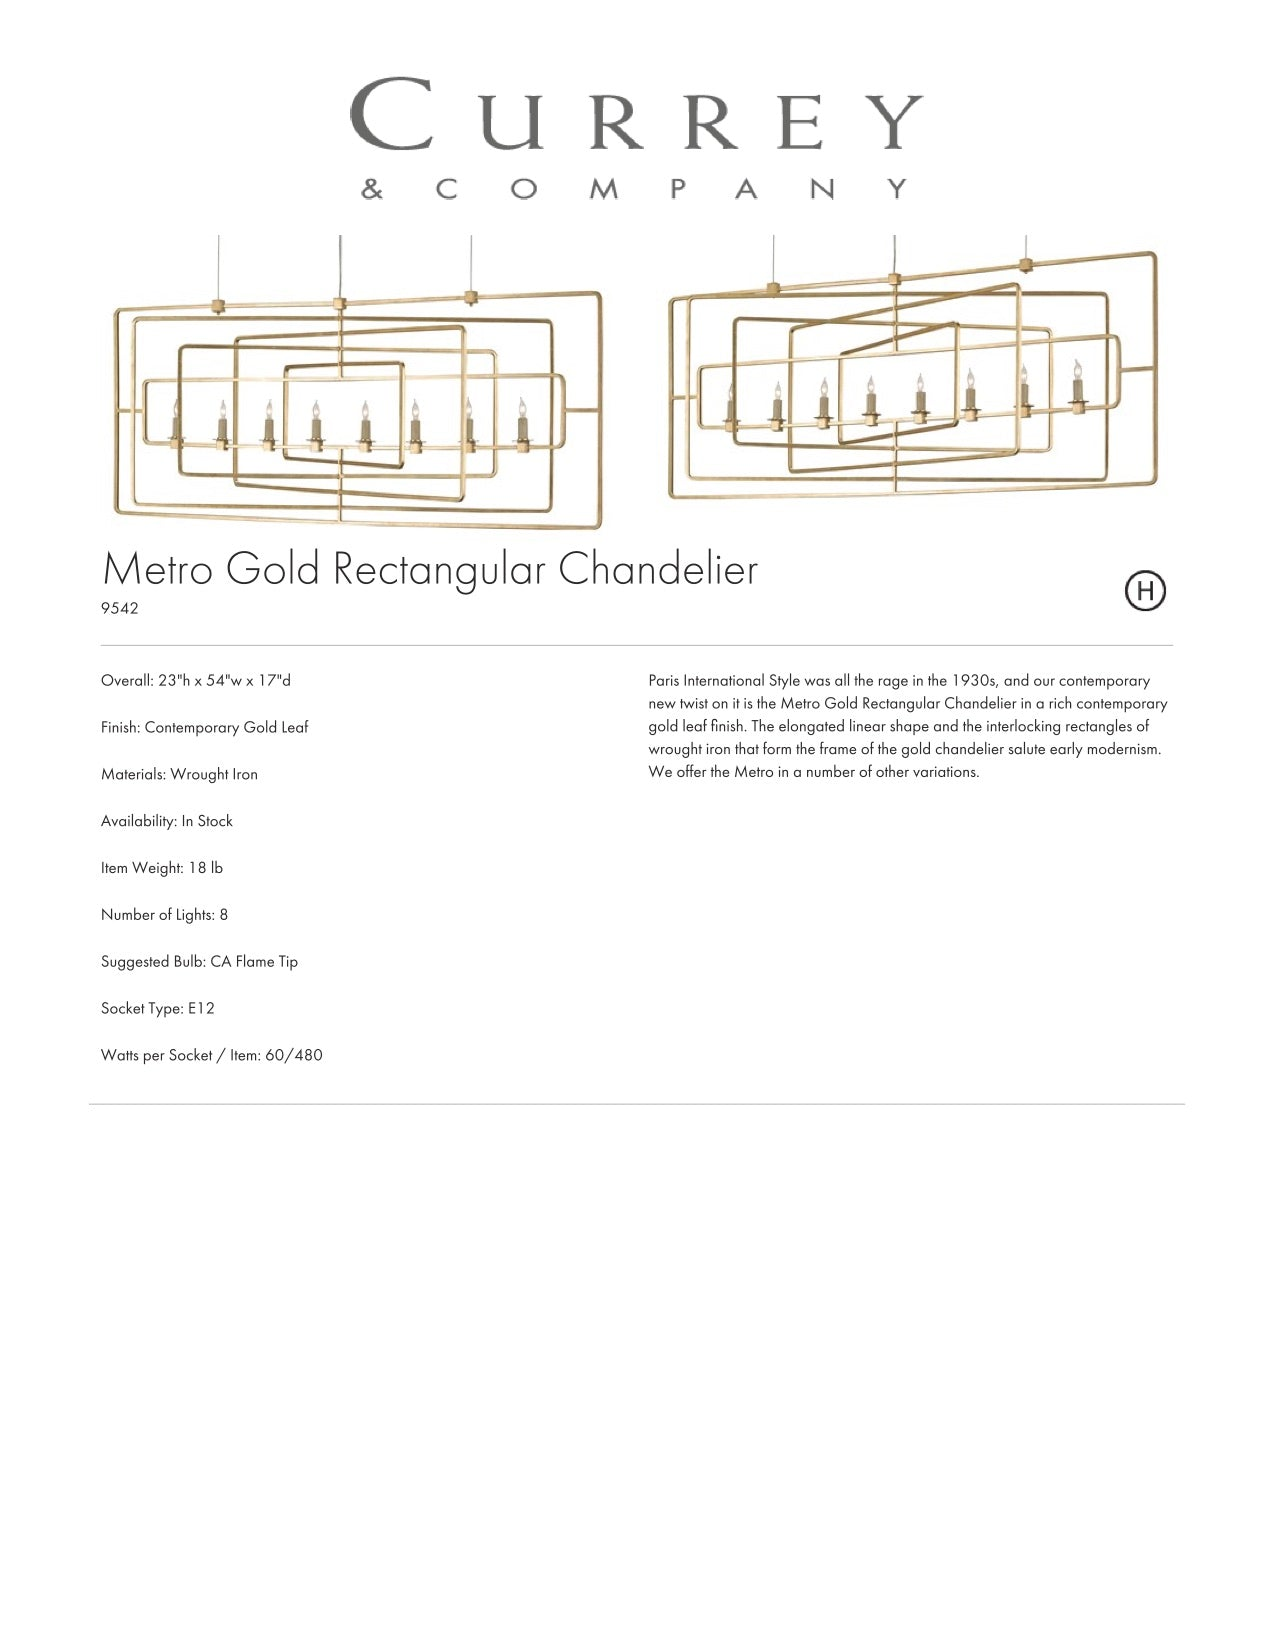 Currey & Company Metro Gold Rectangular Chandelier Tearsheet